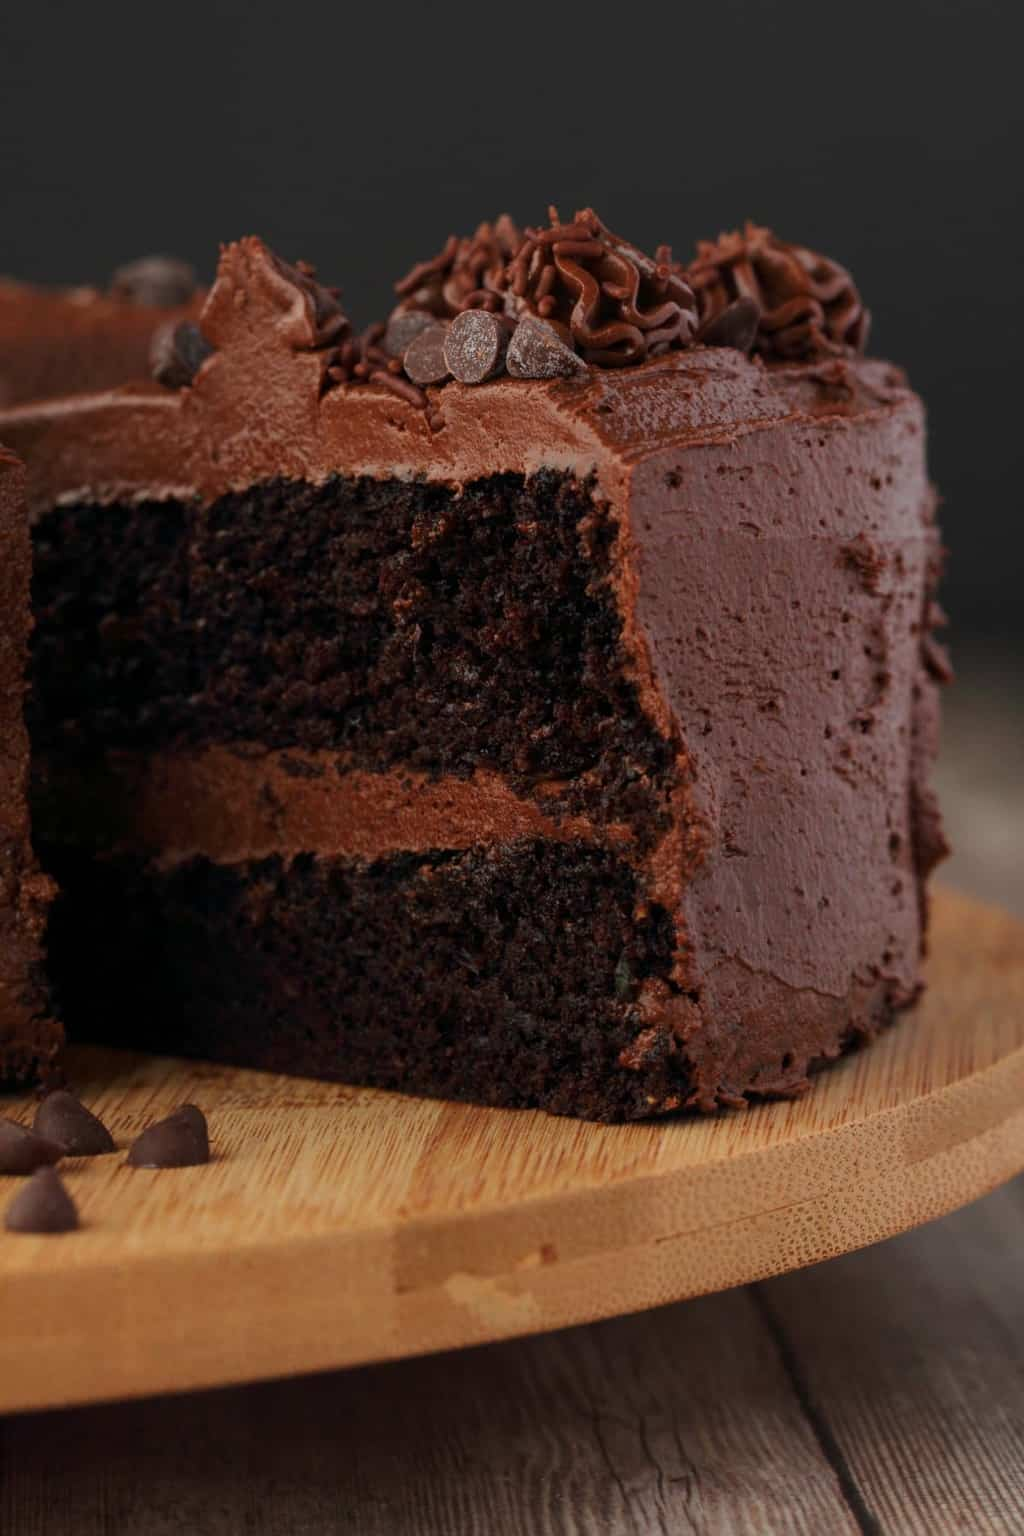 Vegan Chocolate Zucchini Cake on a wooden board with one slice cut and ready to be served.